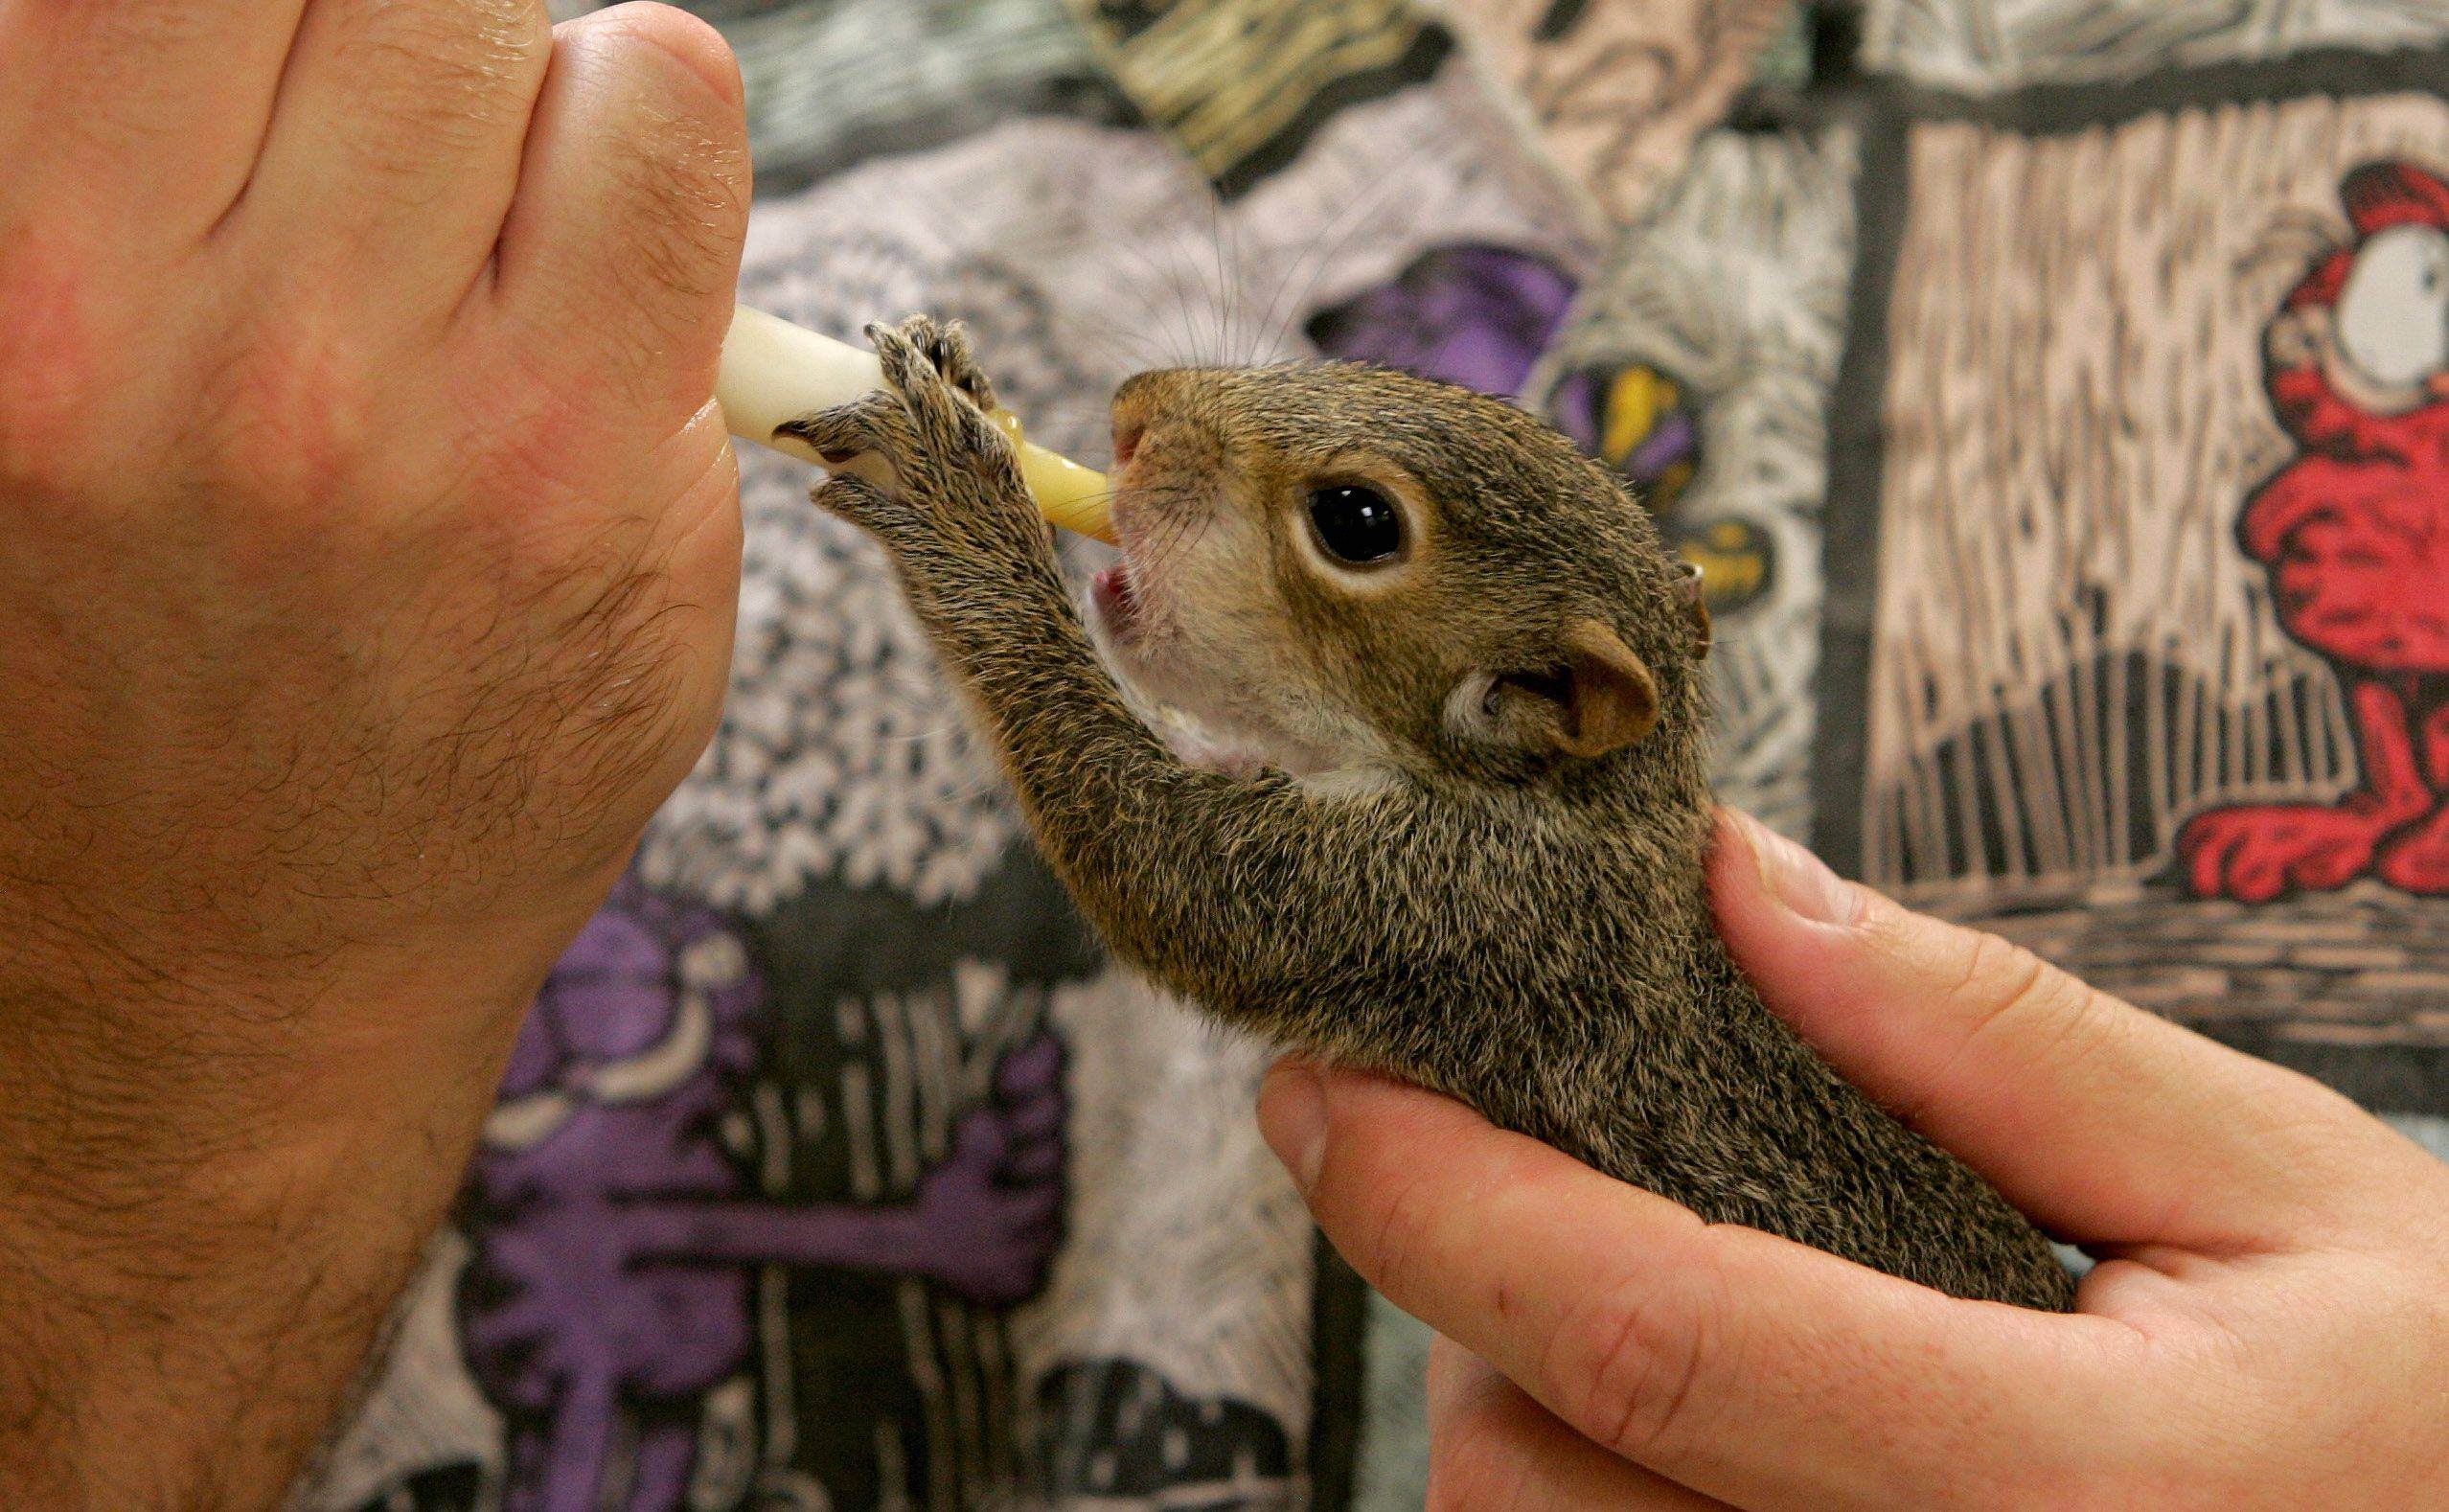 A baby squirrel is hand-fed a special formula for rodents during its care at the center.